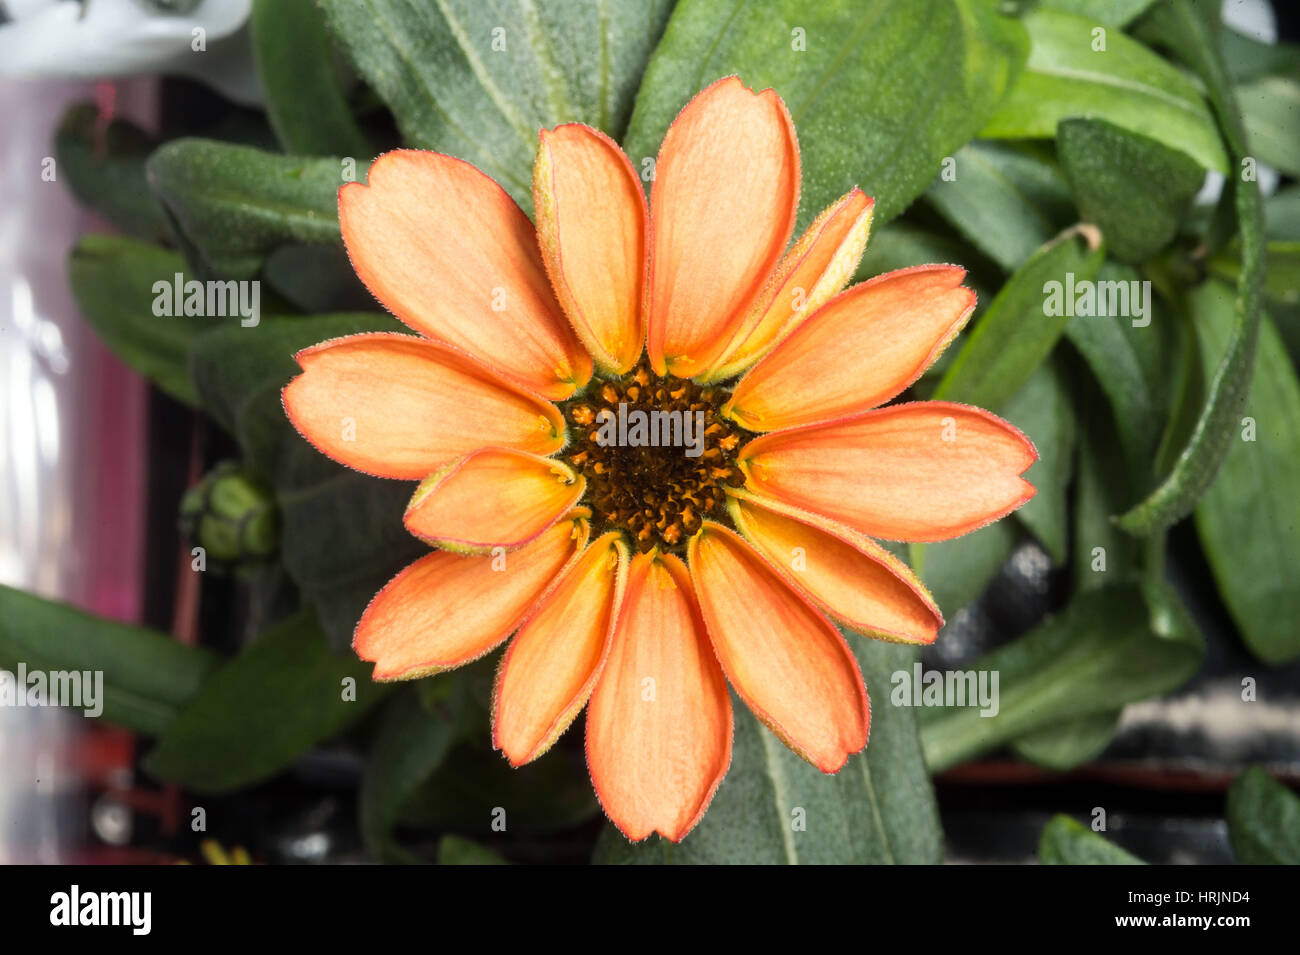 First Flower Grown Aboard ISS - Stock Image